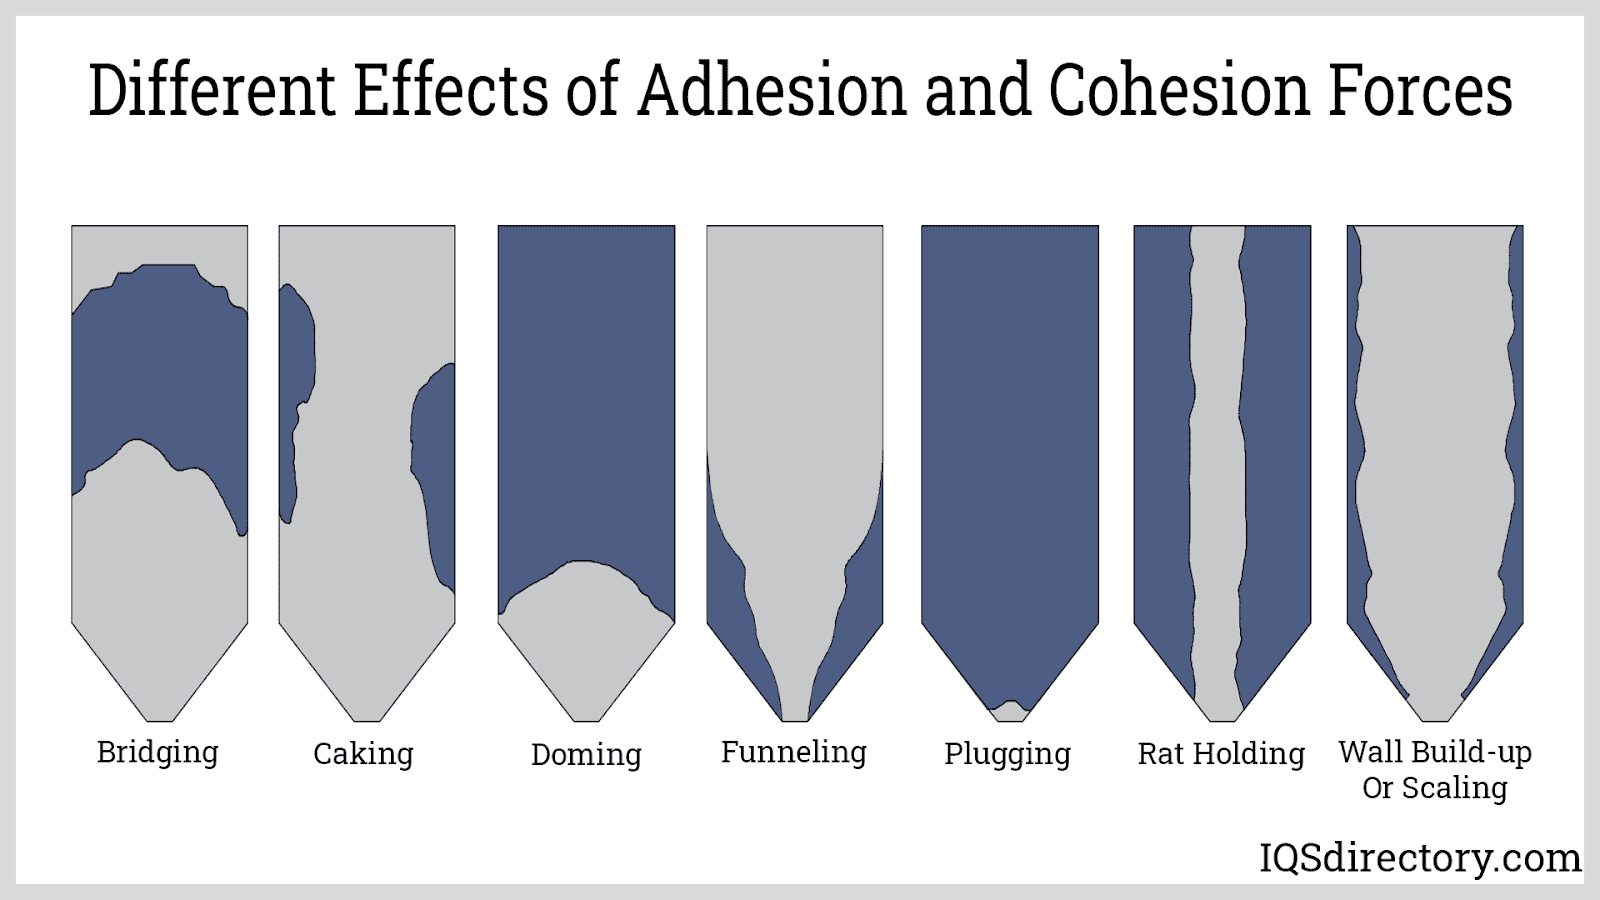 Different Effects of Adhesion and Cohesion Forces